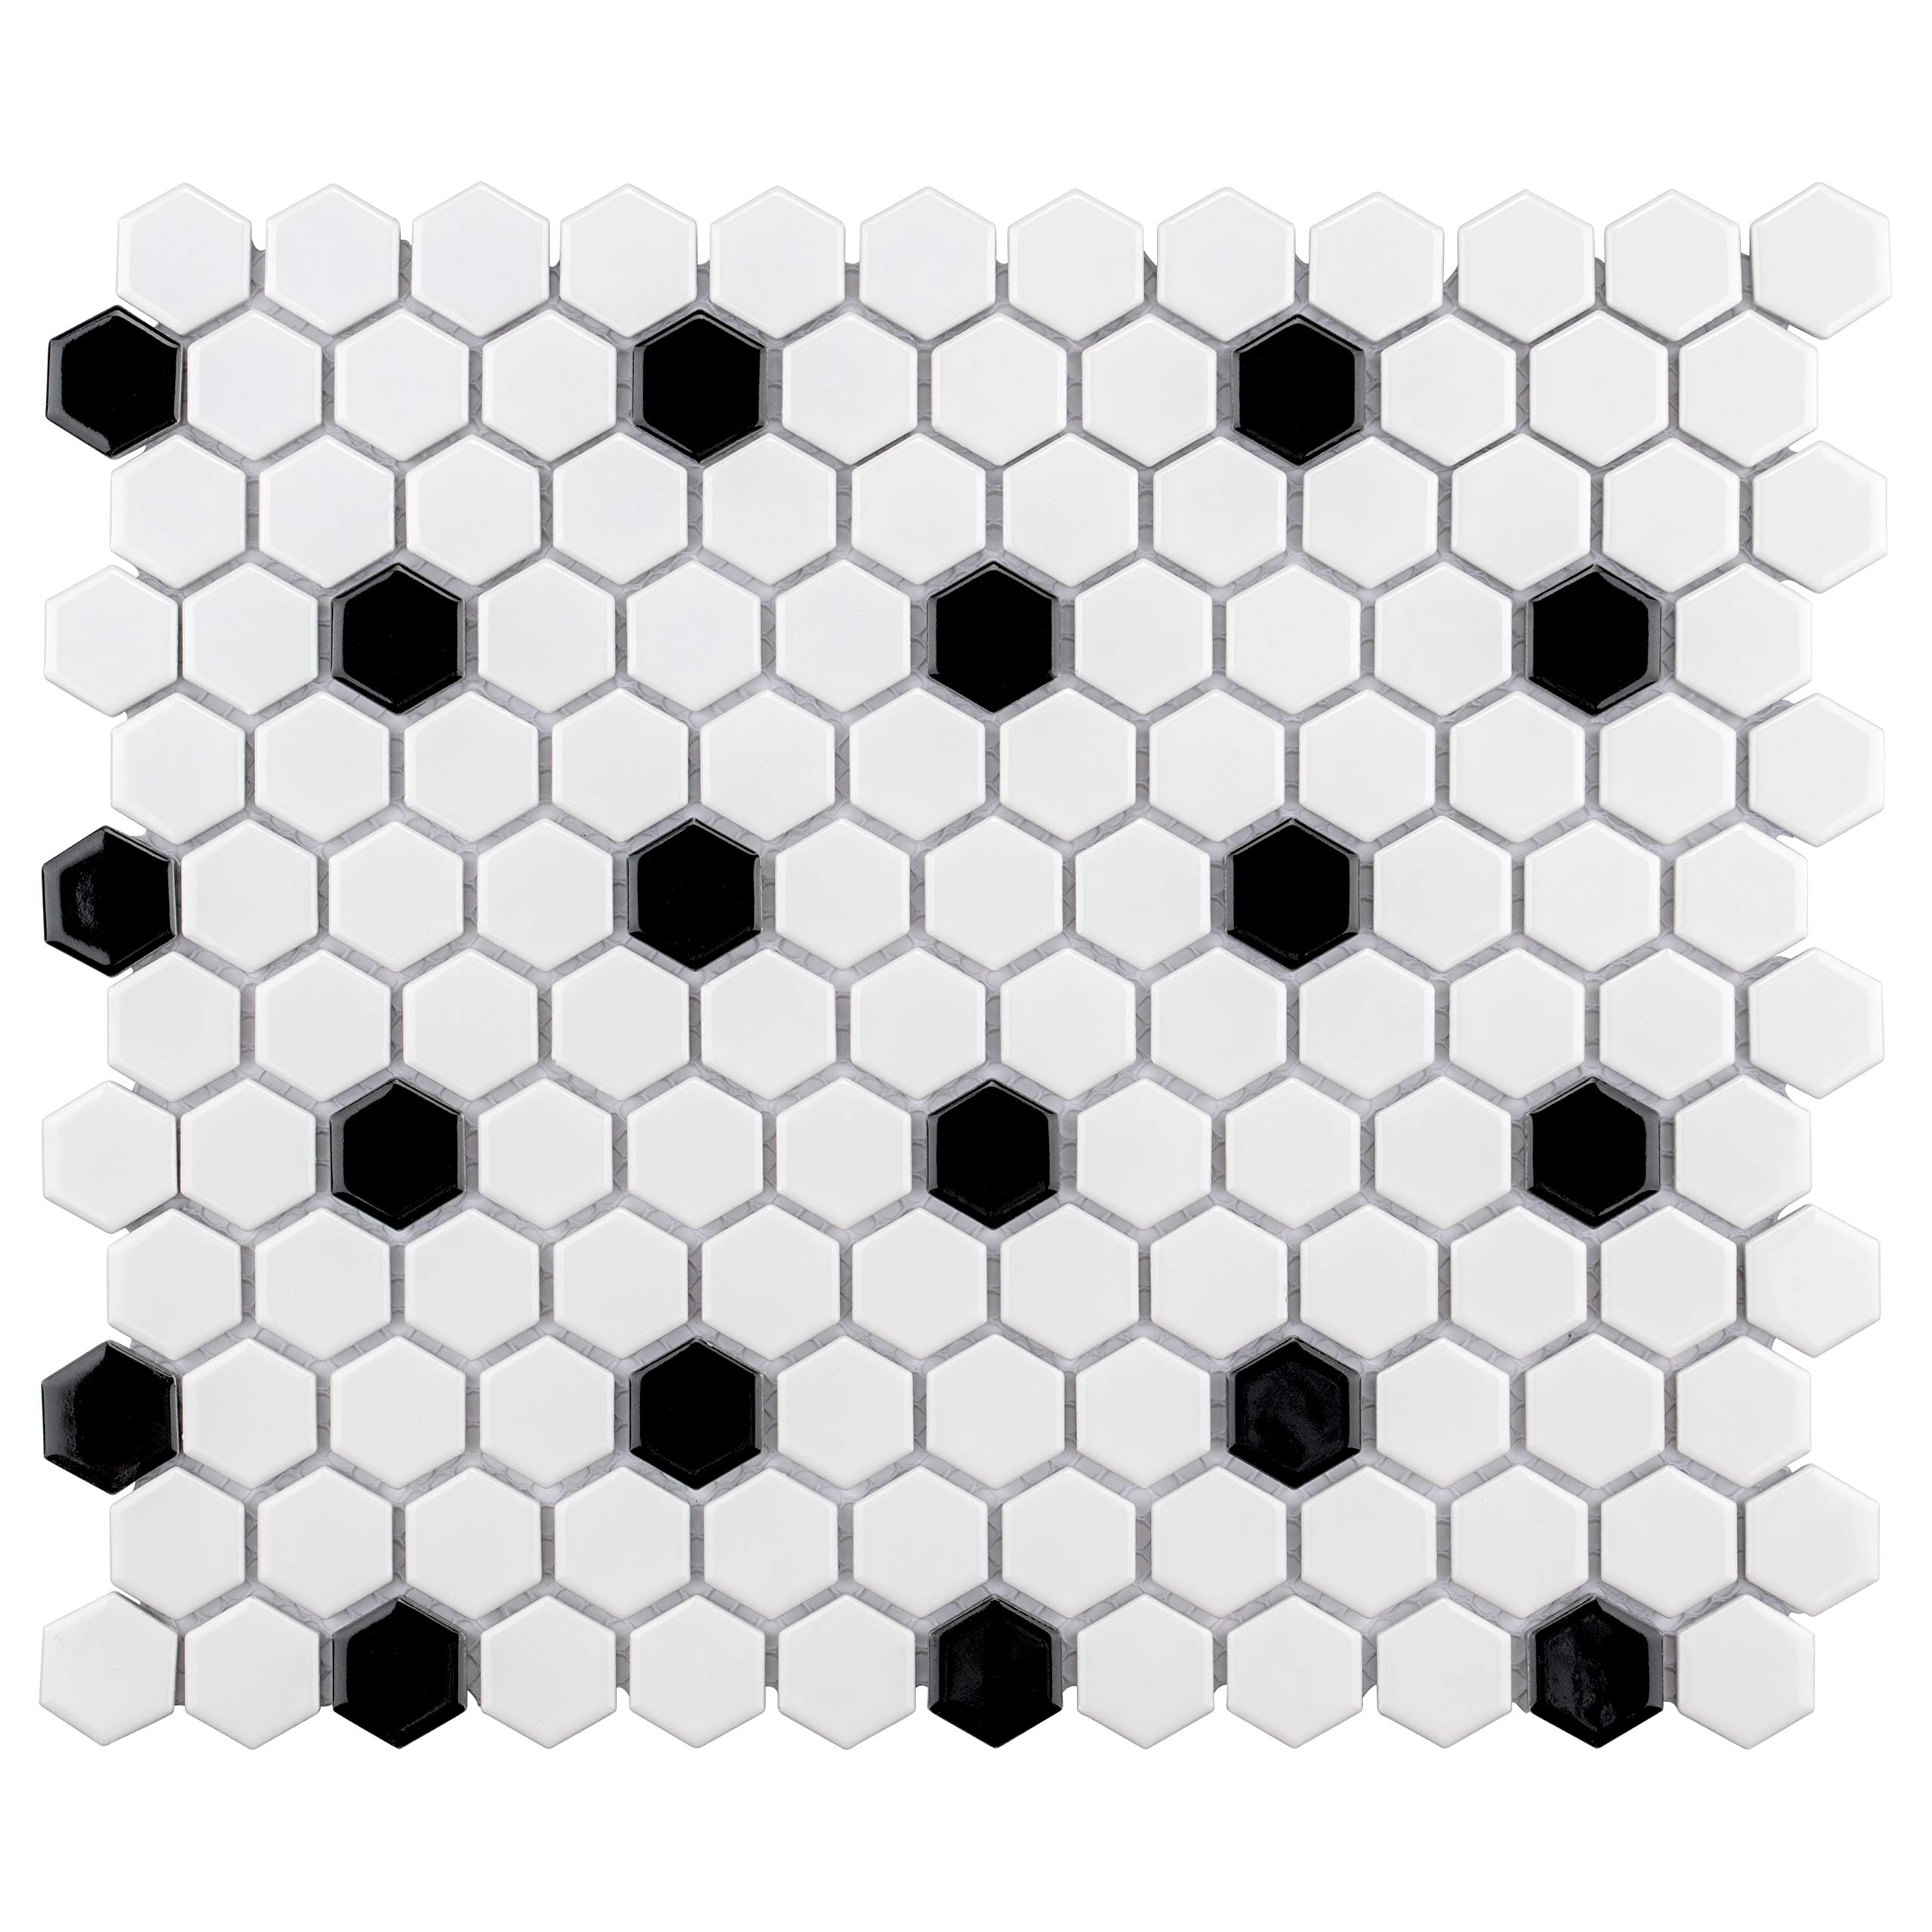 SomerTile FXLMHWBD Retro Hexagon Porcelain Mosaic Floor and Wall Tile, 10.25'' x 11.75'', White with Black Dot by SOMERTILE